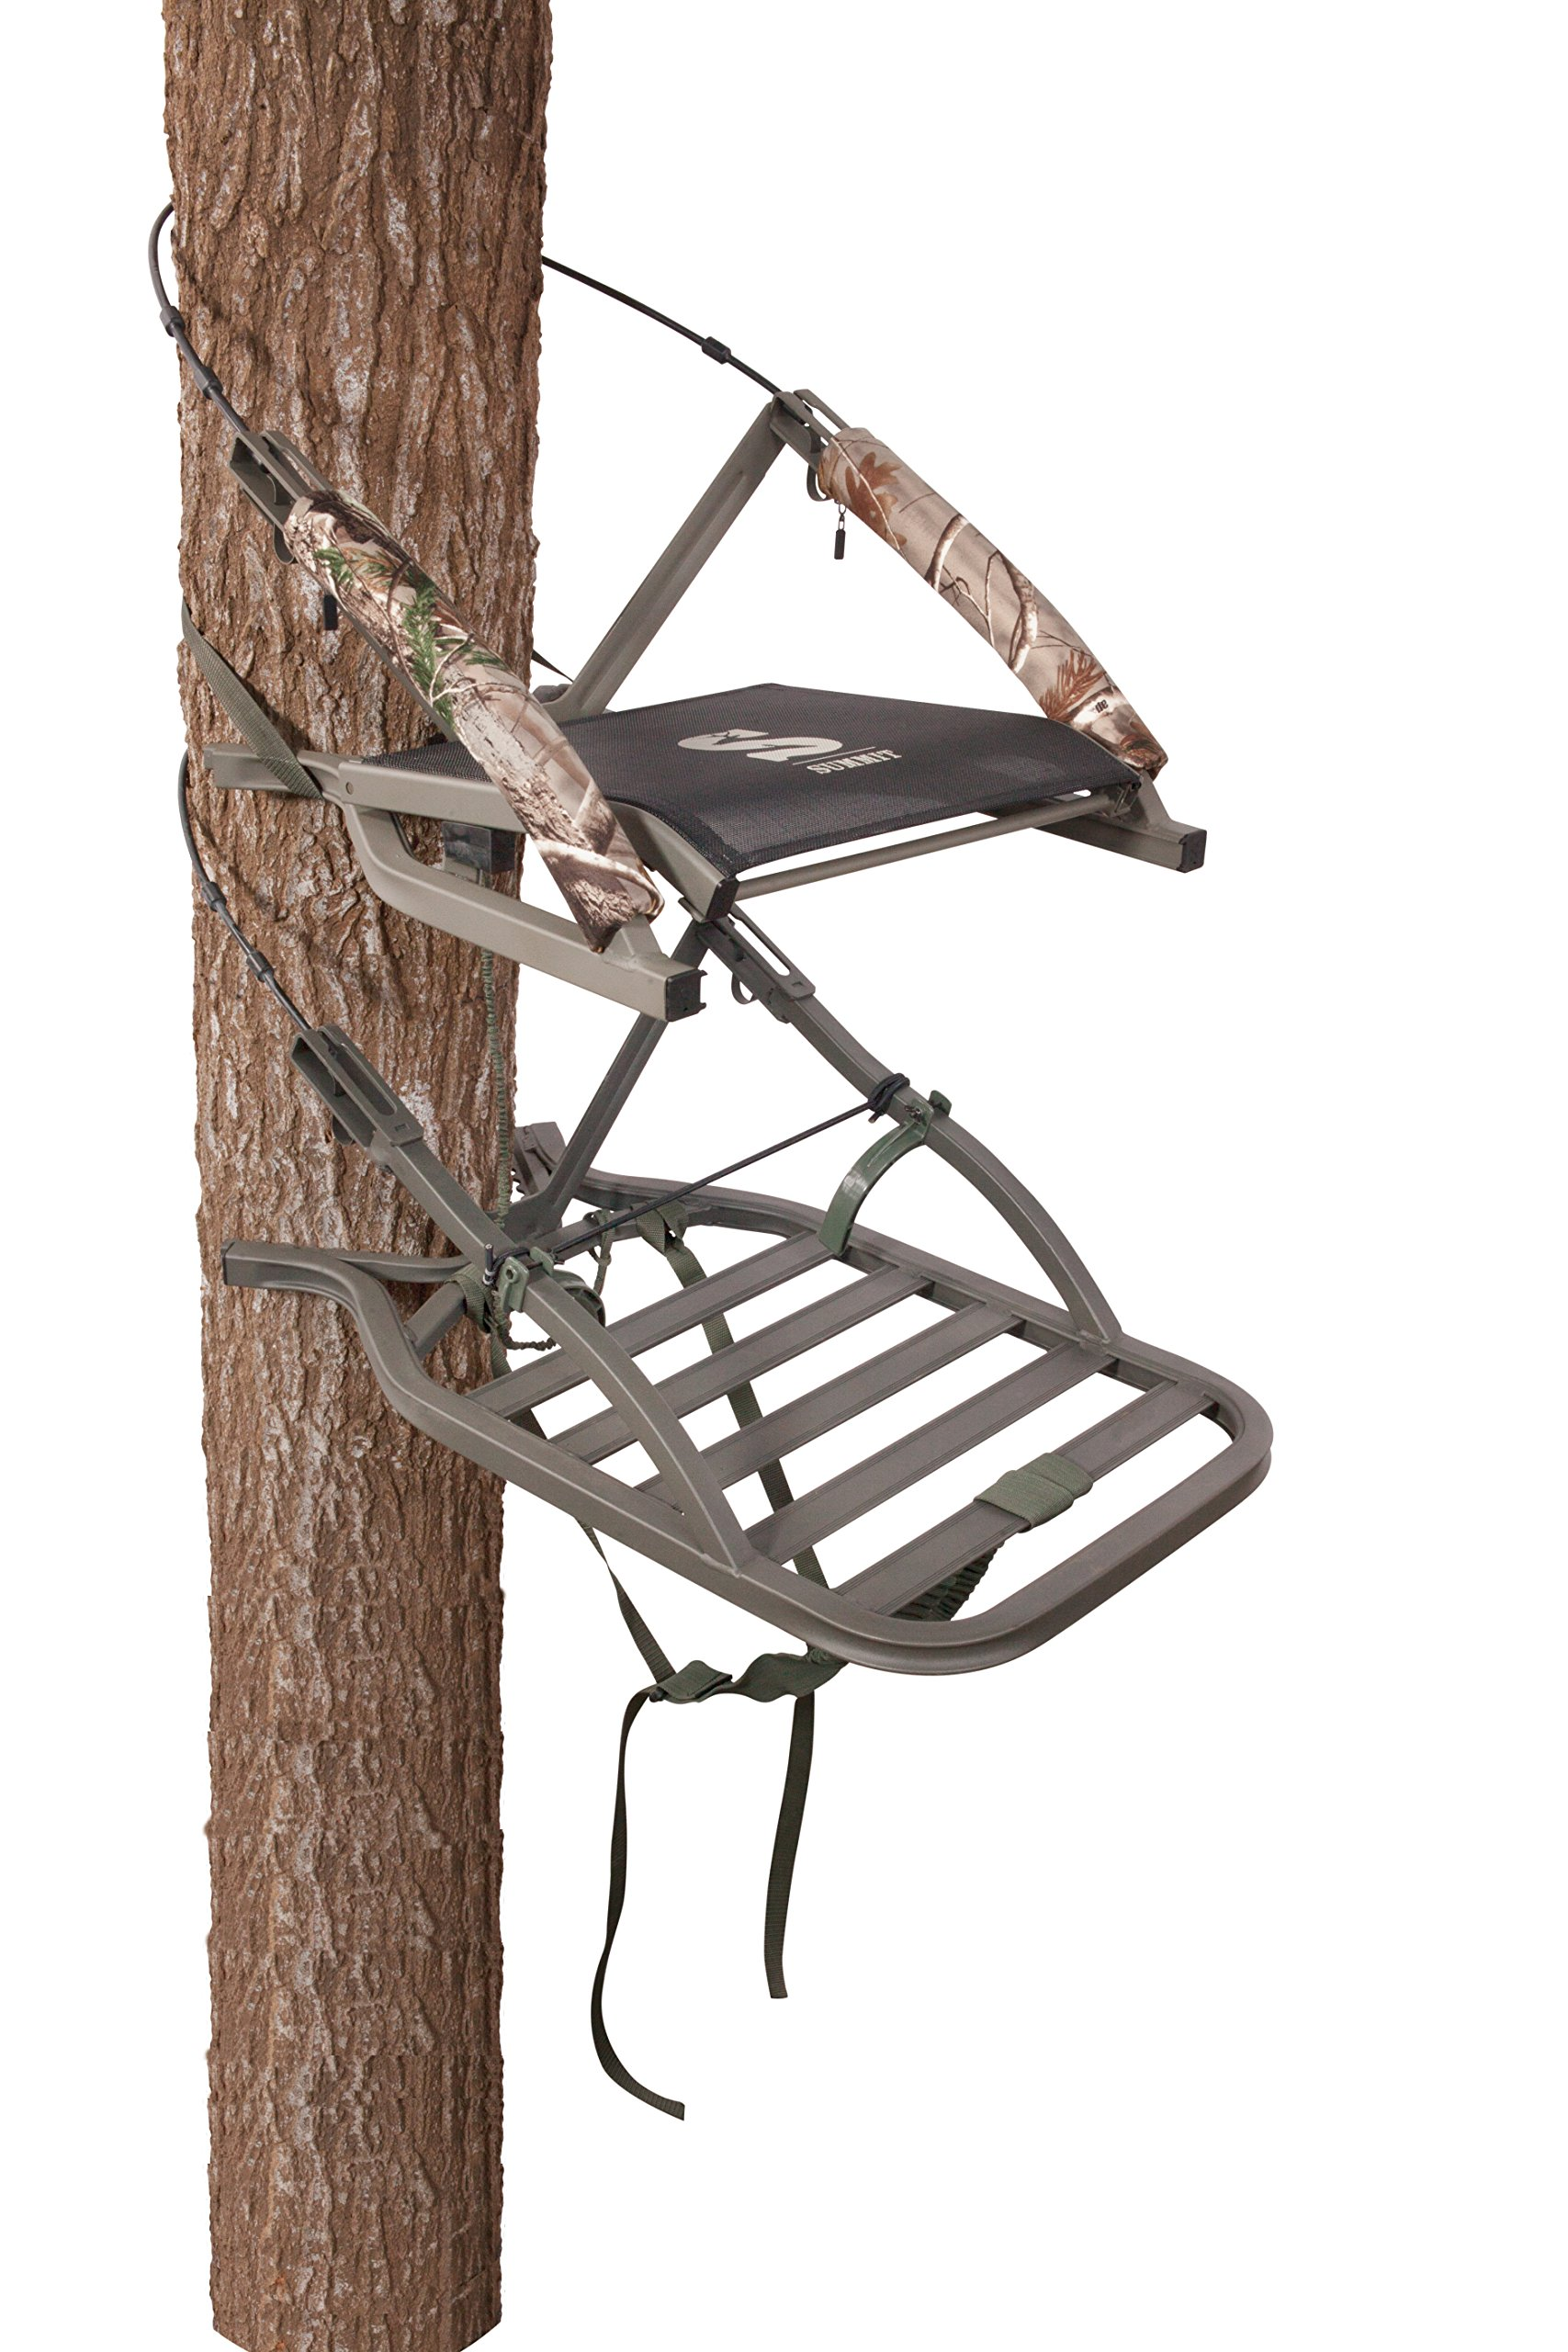 Summit Treestands Sentry SD Open Front Climbing Stand by Summit Treestands (Image #1)